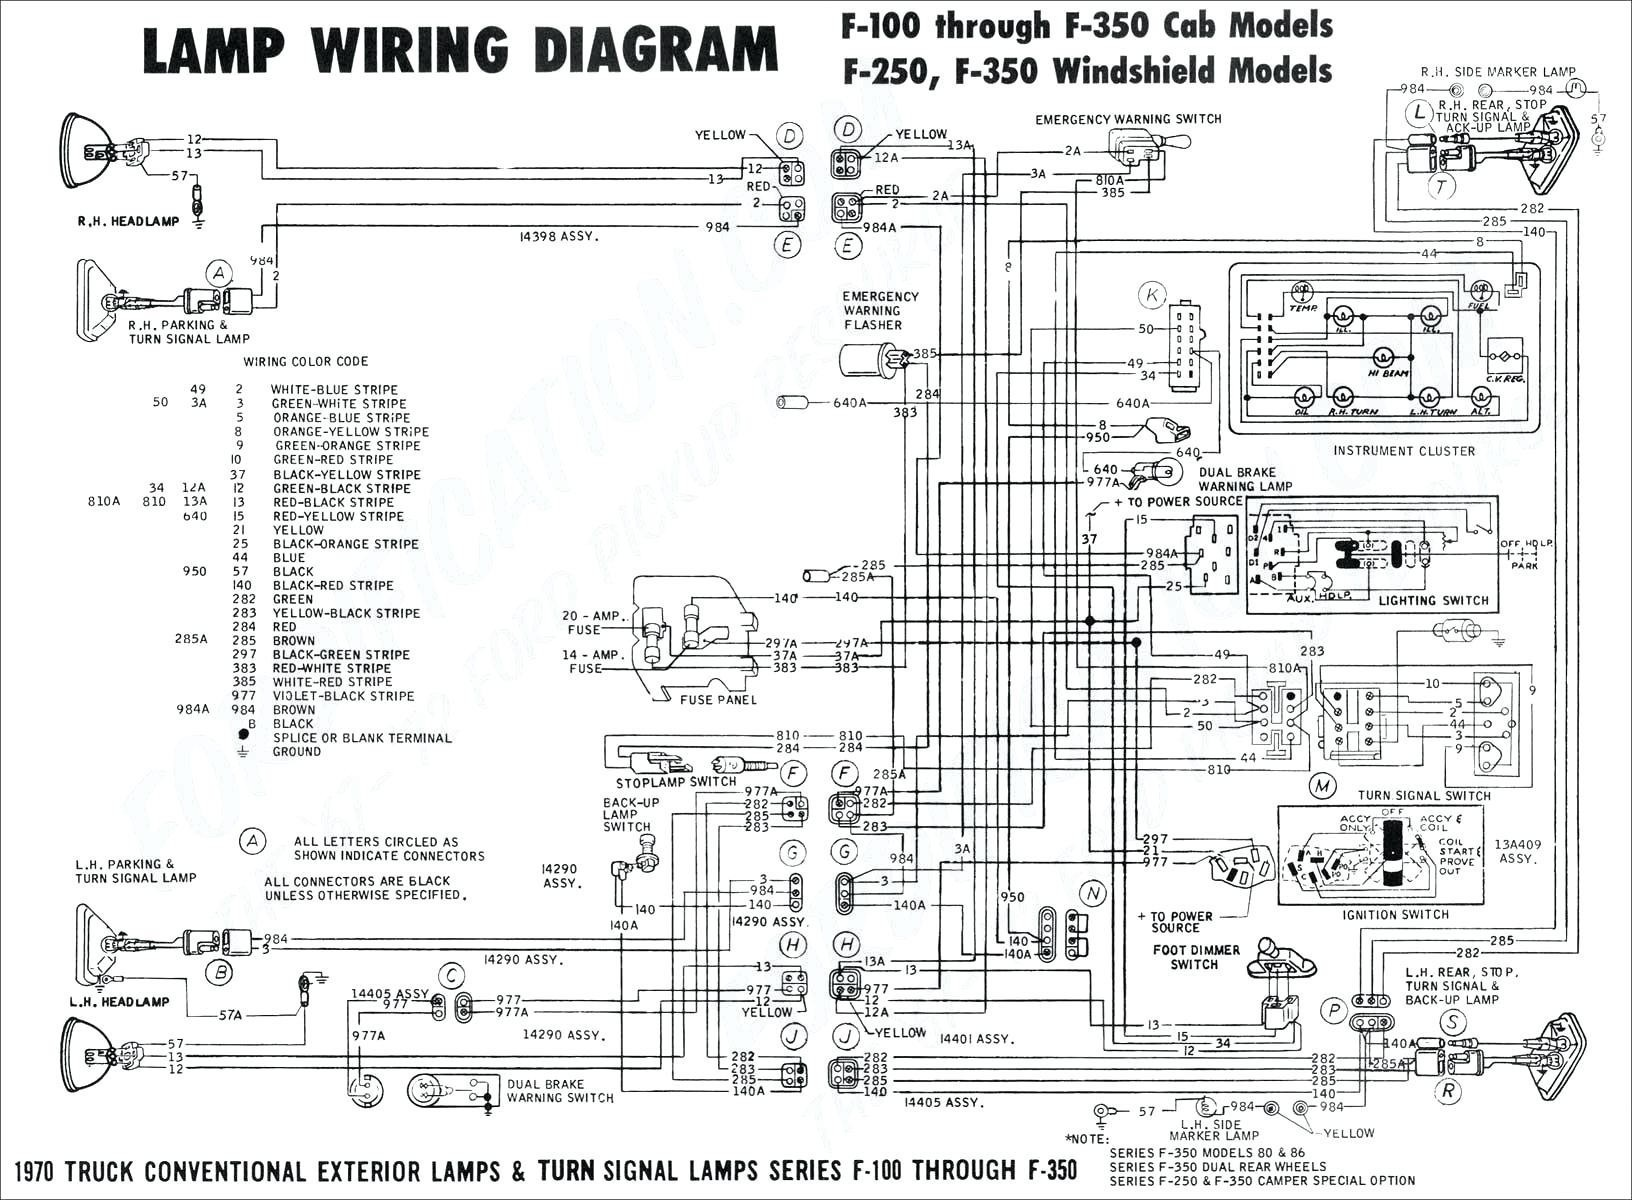 1989 ford f150 ignition wiring diagram image wiring diagram rh magnusrosen net Ford HEI Distributor Wiring Diagram Ford Truck Distributor Wiring